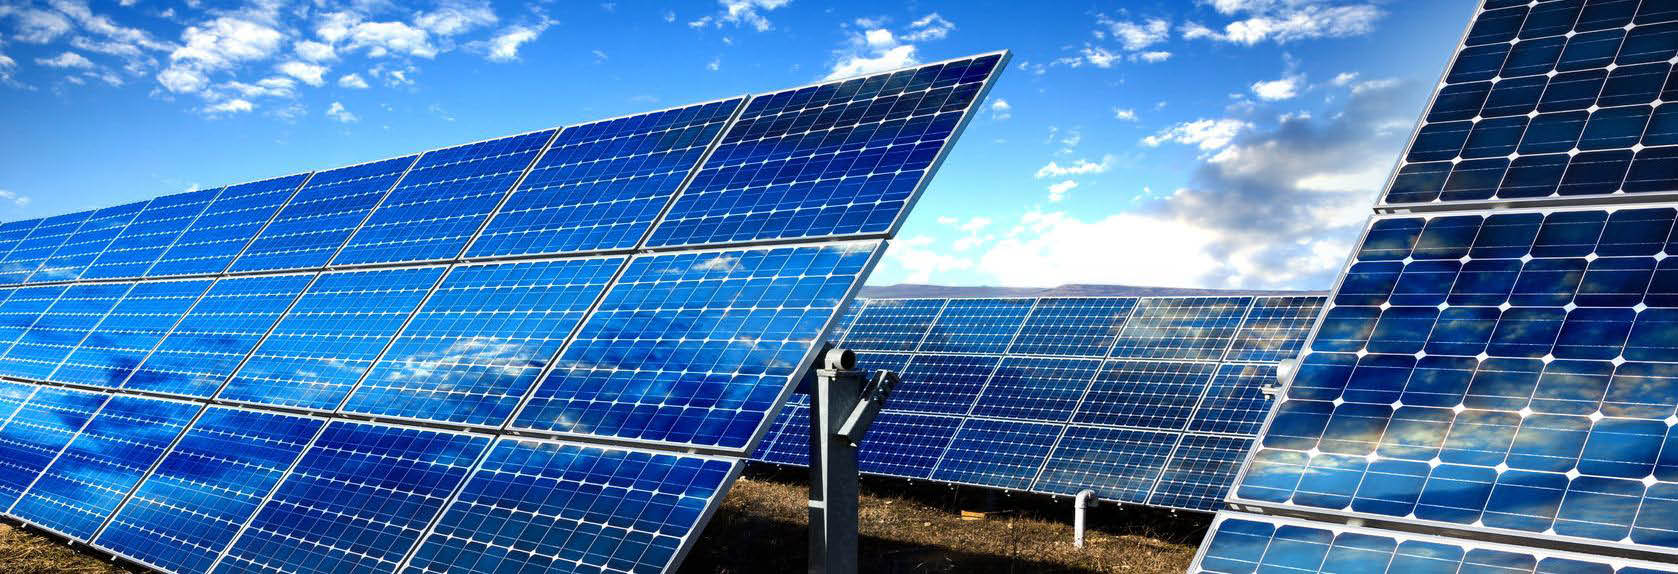 Geothermal Energy Options can install residential solar panels in you Hudson Valley home